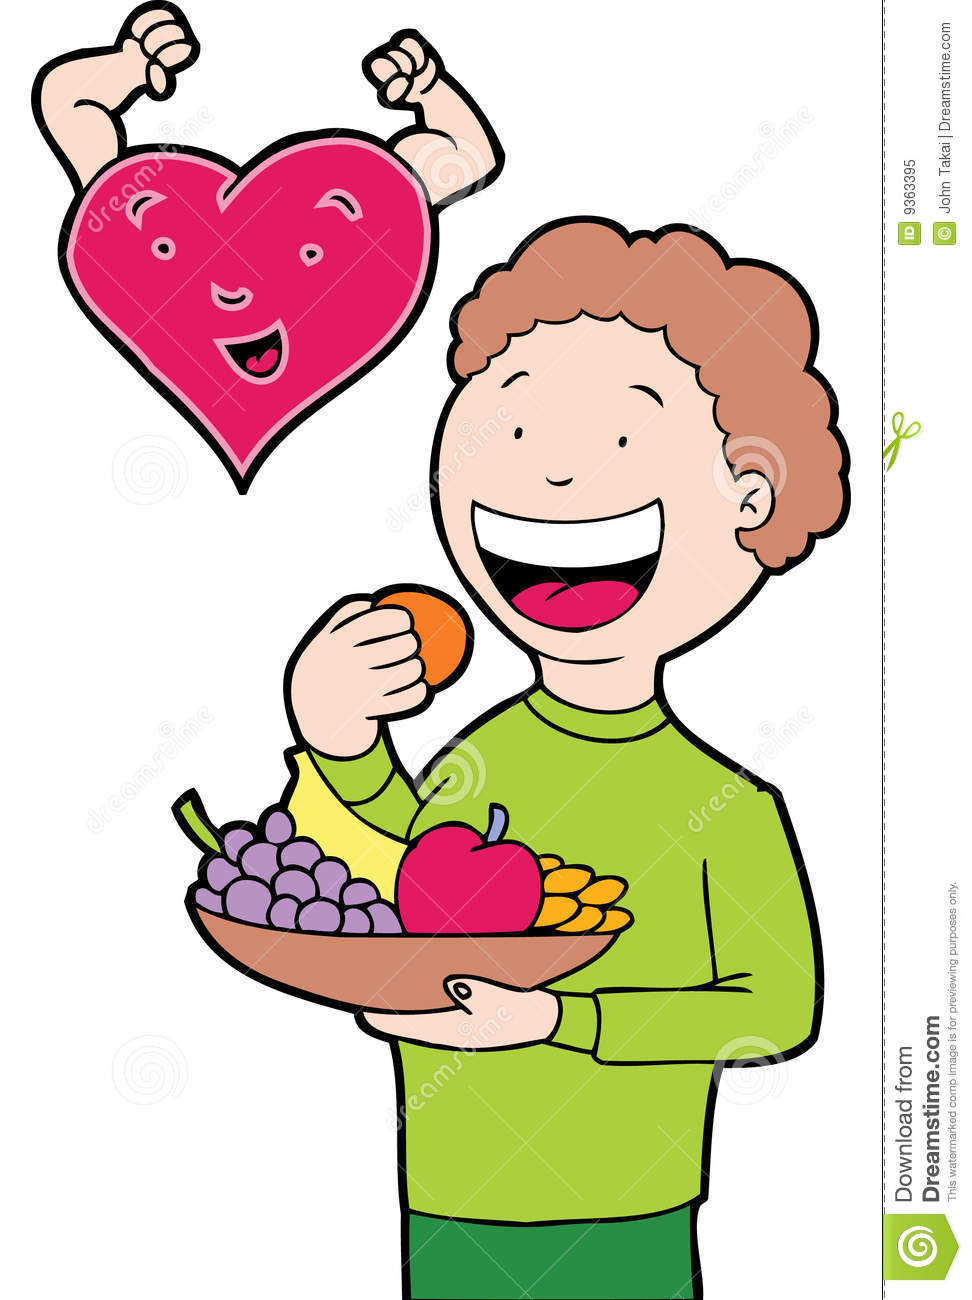 Clip art healthy person.